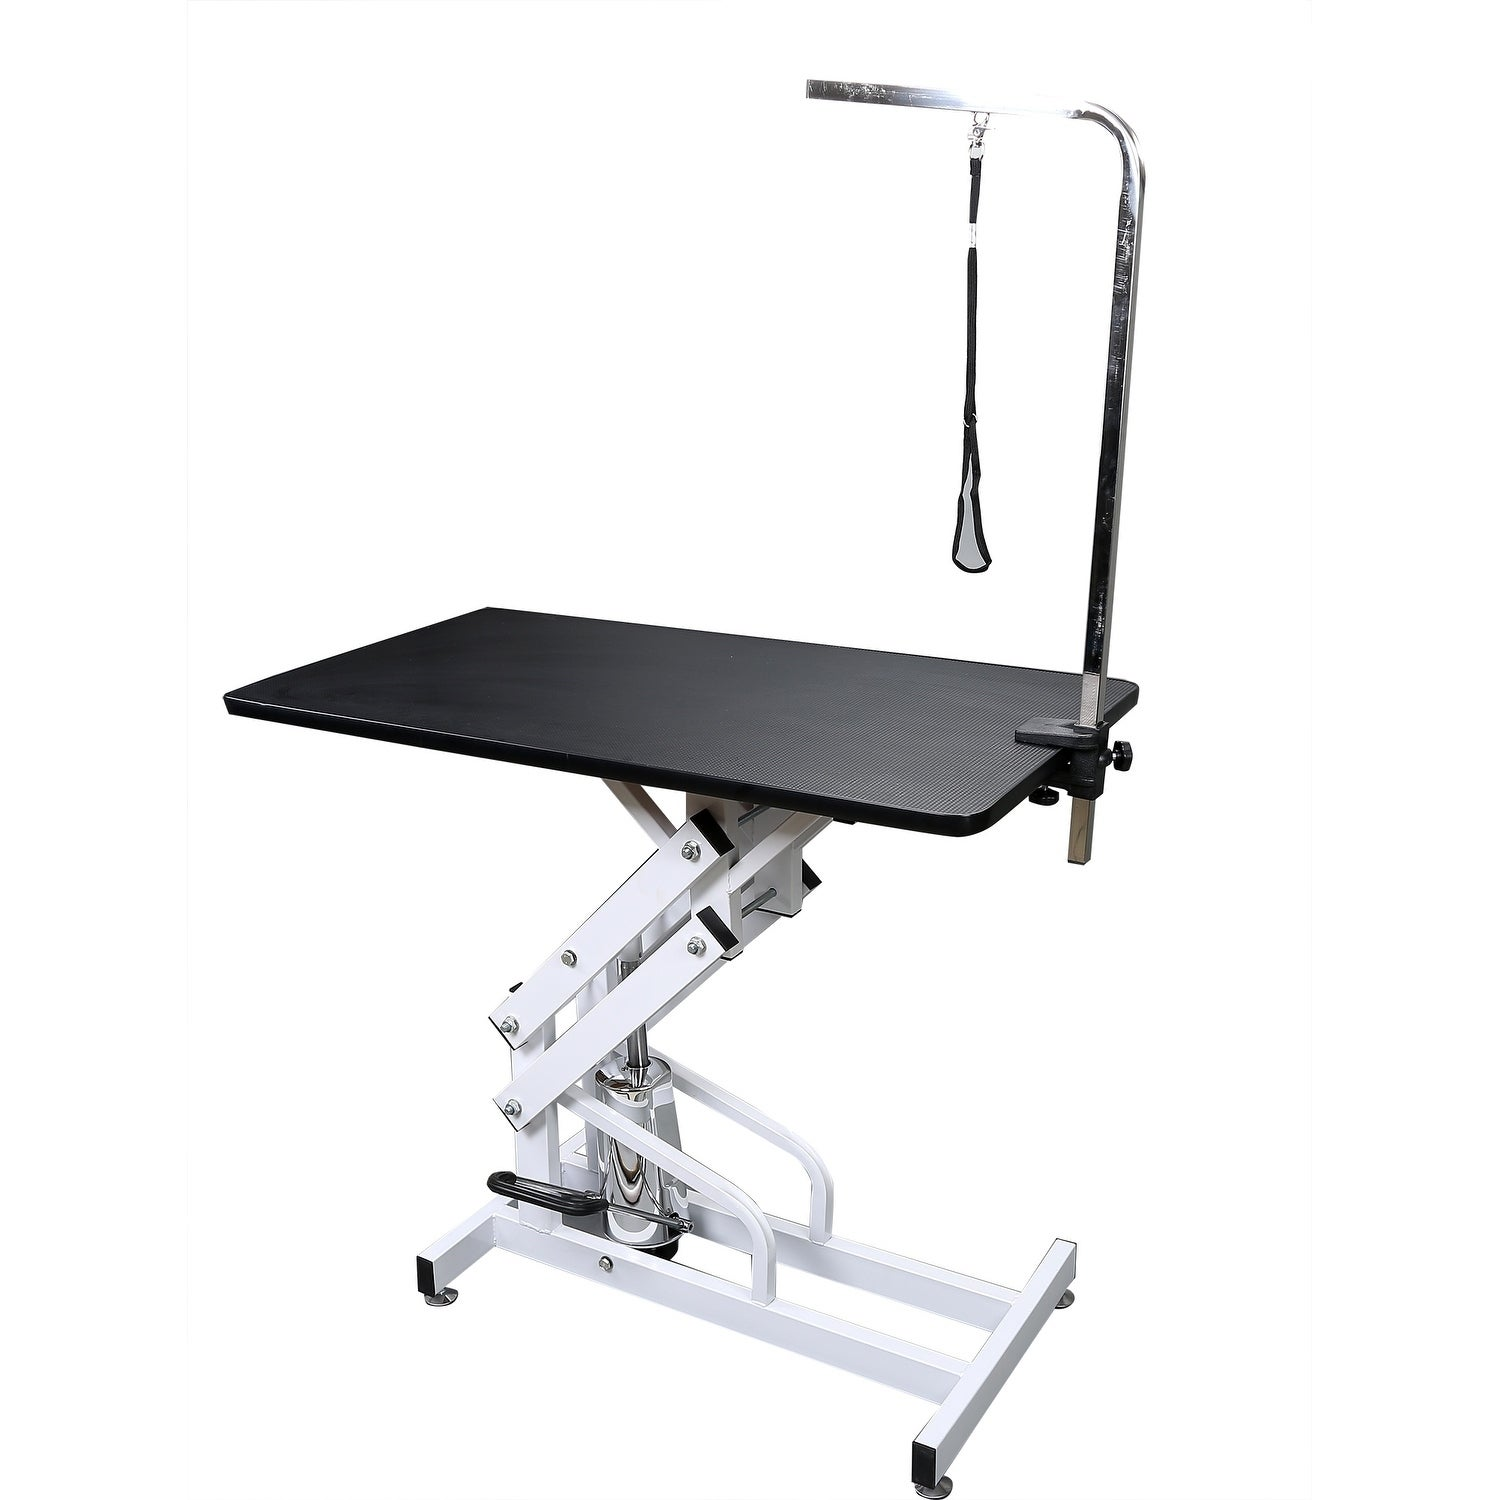 Lovupet Z Lift Strong Professional Hydraulic Pet Grooming Table Free Shipping Today 23299131